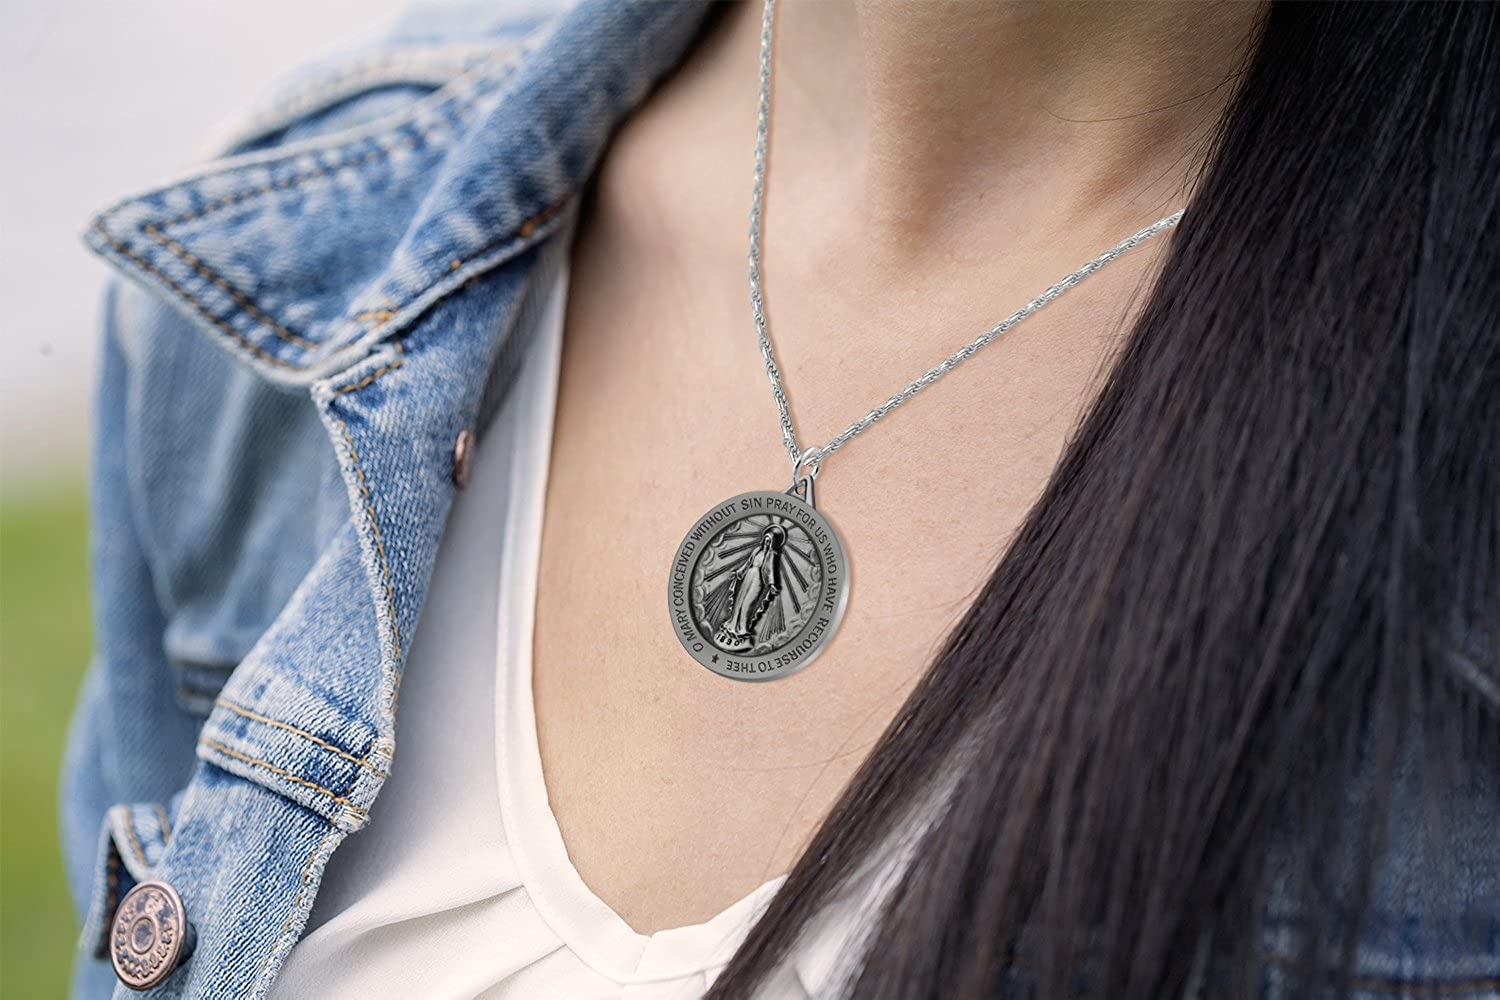 US Jewels And Gems New 0.925 Sterling Silver 1 Round Miraculous Virgin Mary Antique Finish Pendant Necklace 18 to 24